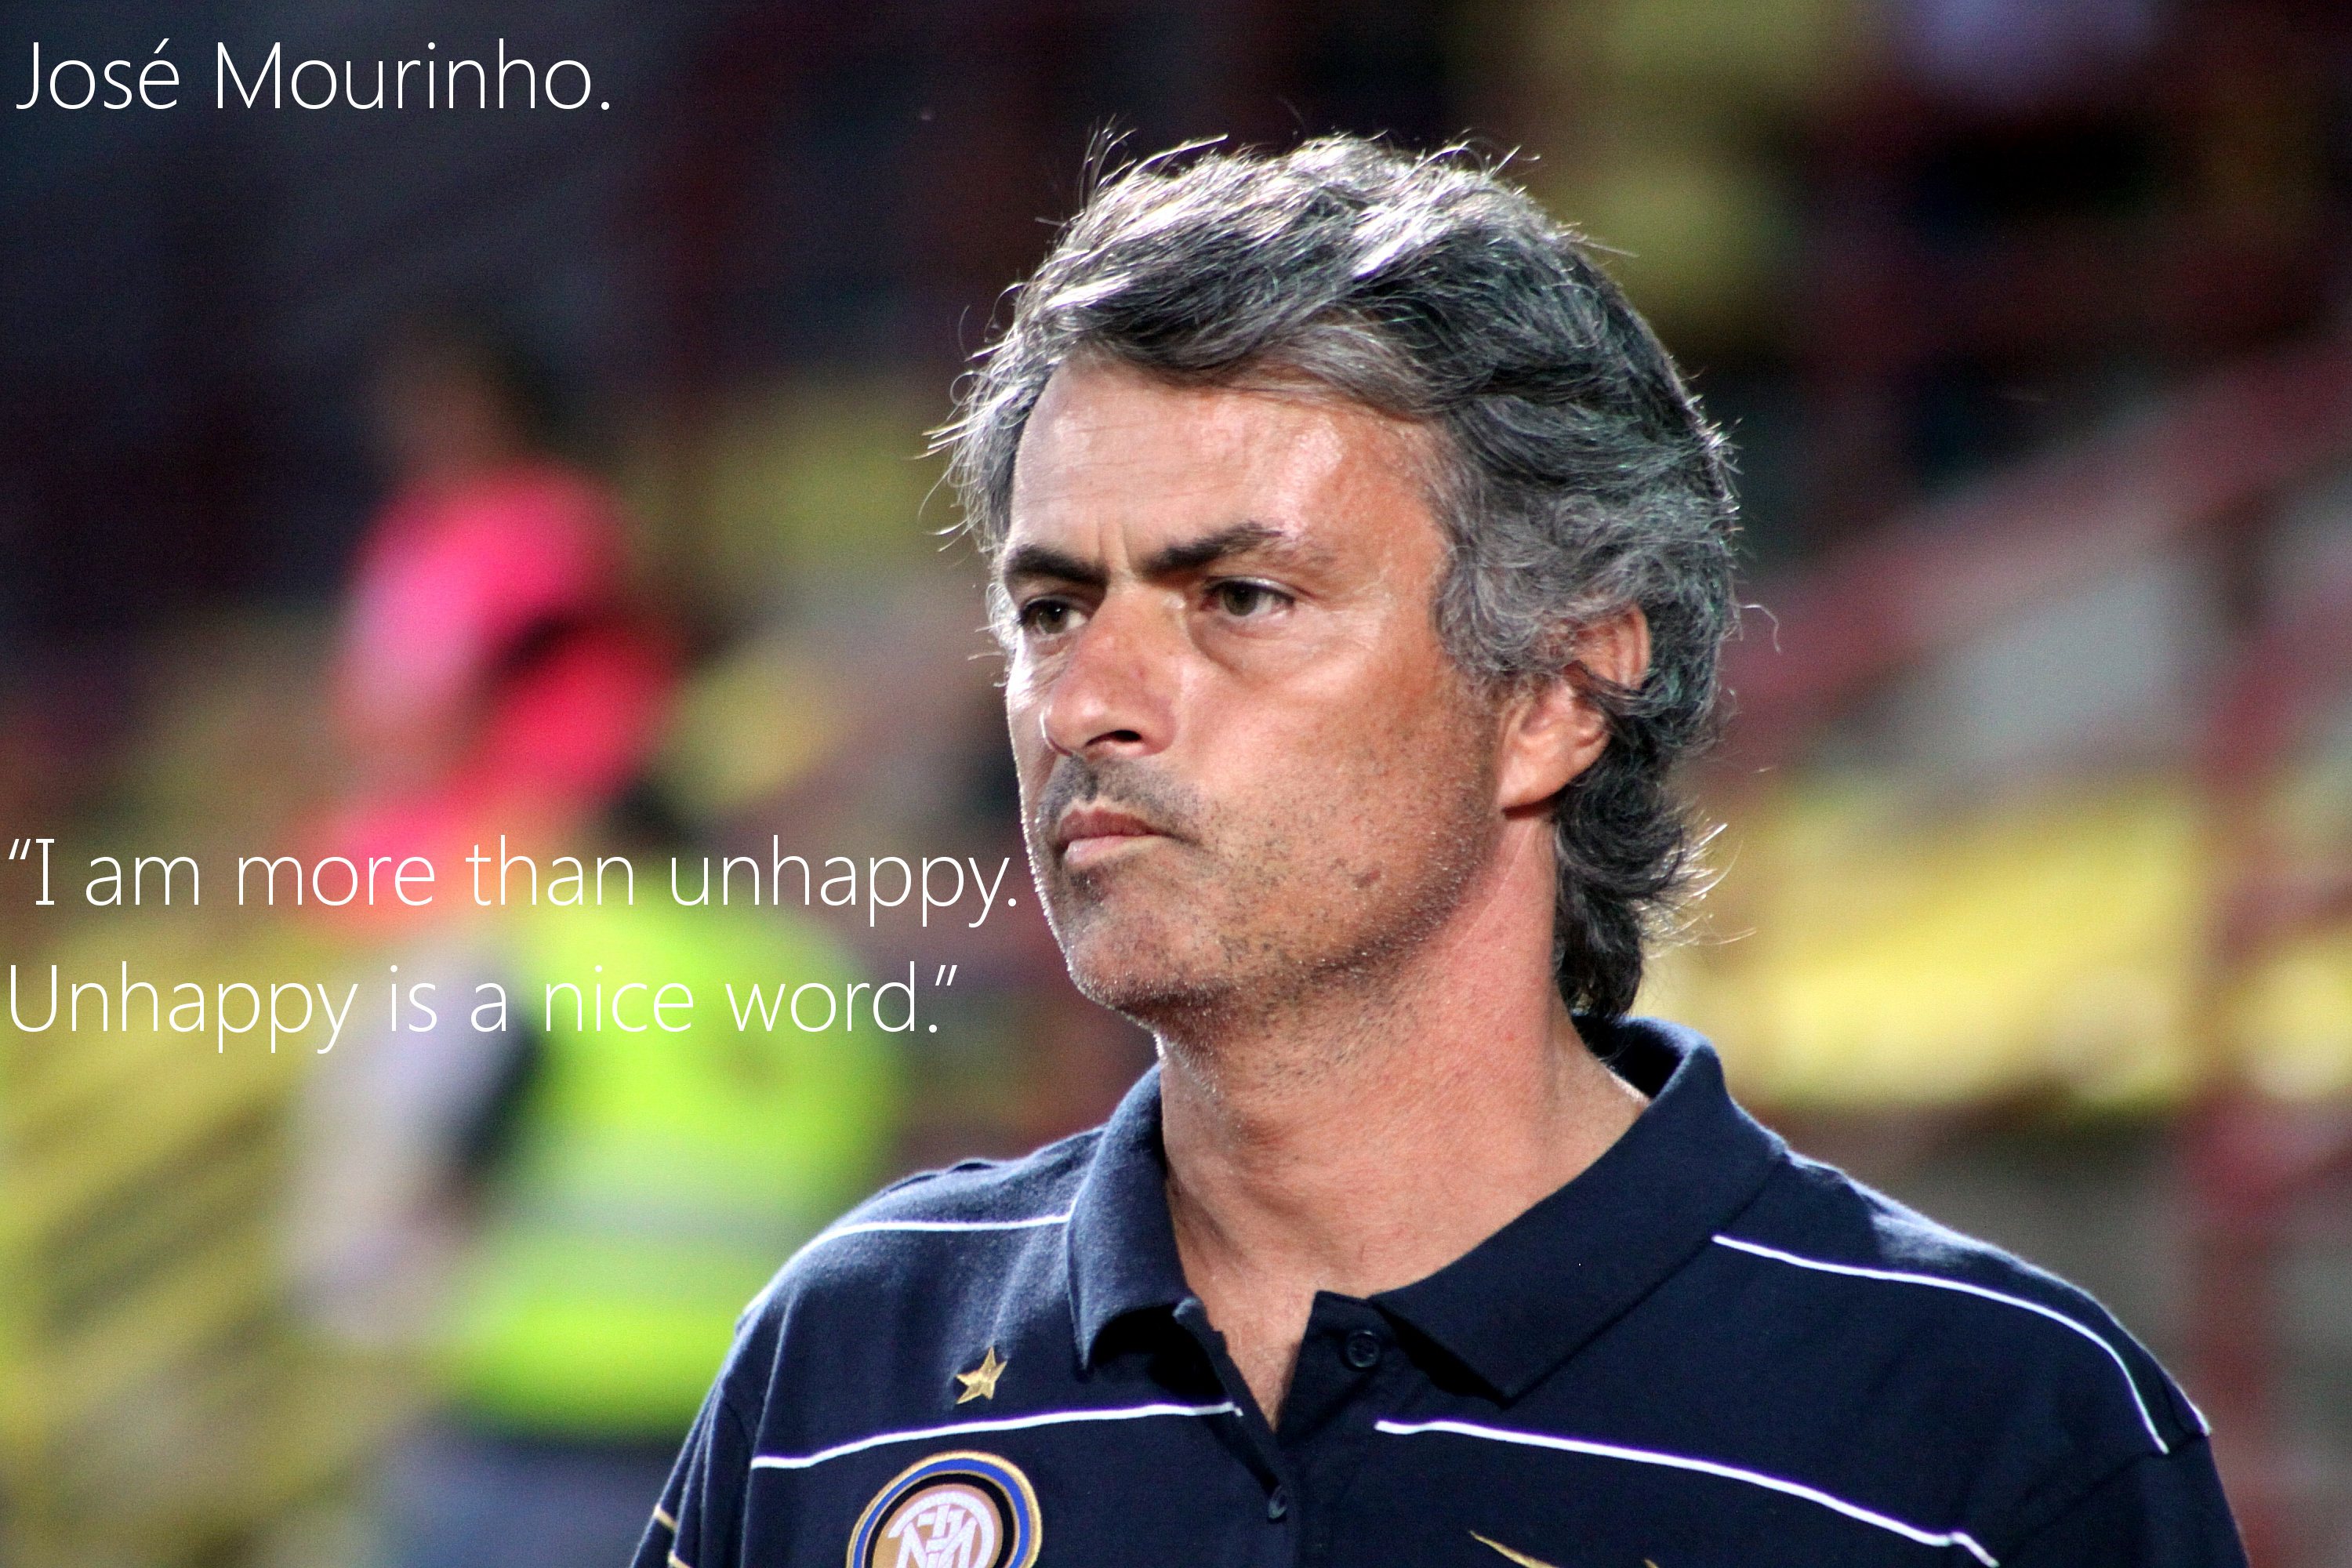 jose mourinho quotes Jose mourinho slams spurs, calls himself one of the greats and quotes philosophy in press conference.